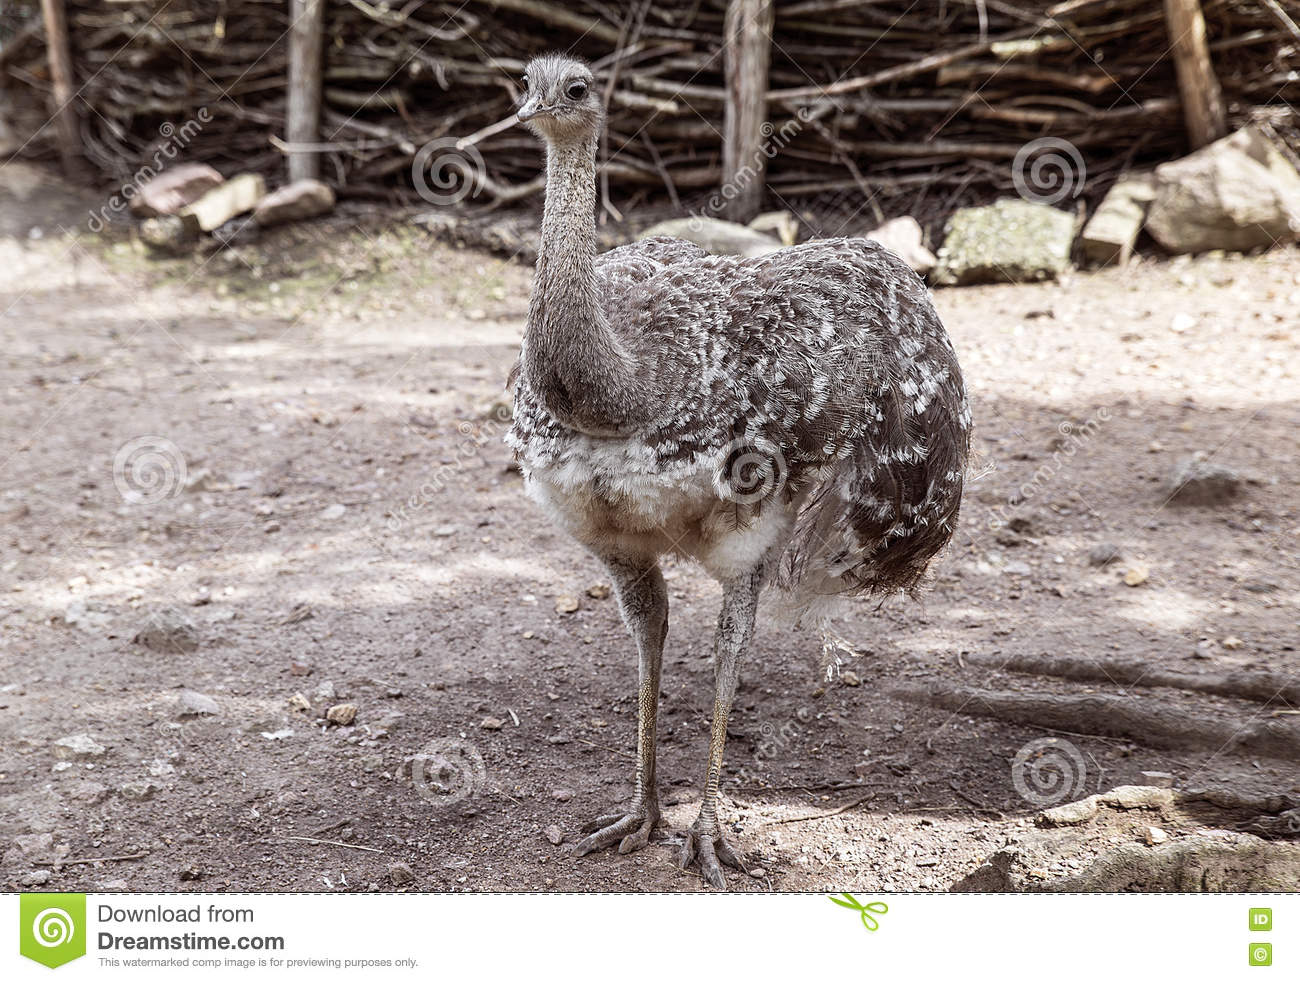 Ostrich bird with magnificent plumage gray